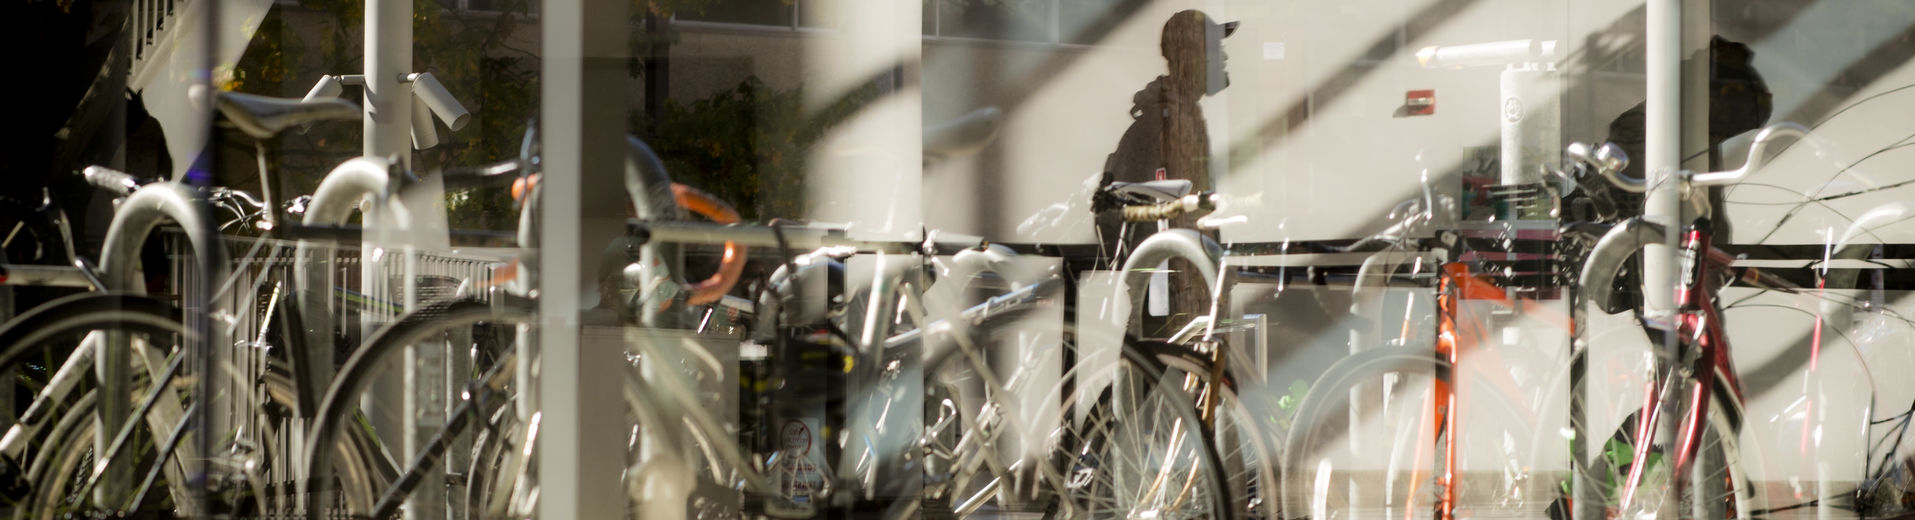 abstract image of bicycles parked outside a building on Main Campus.